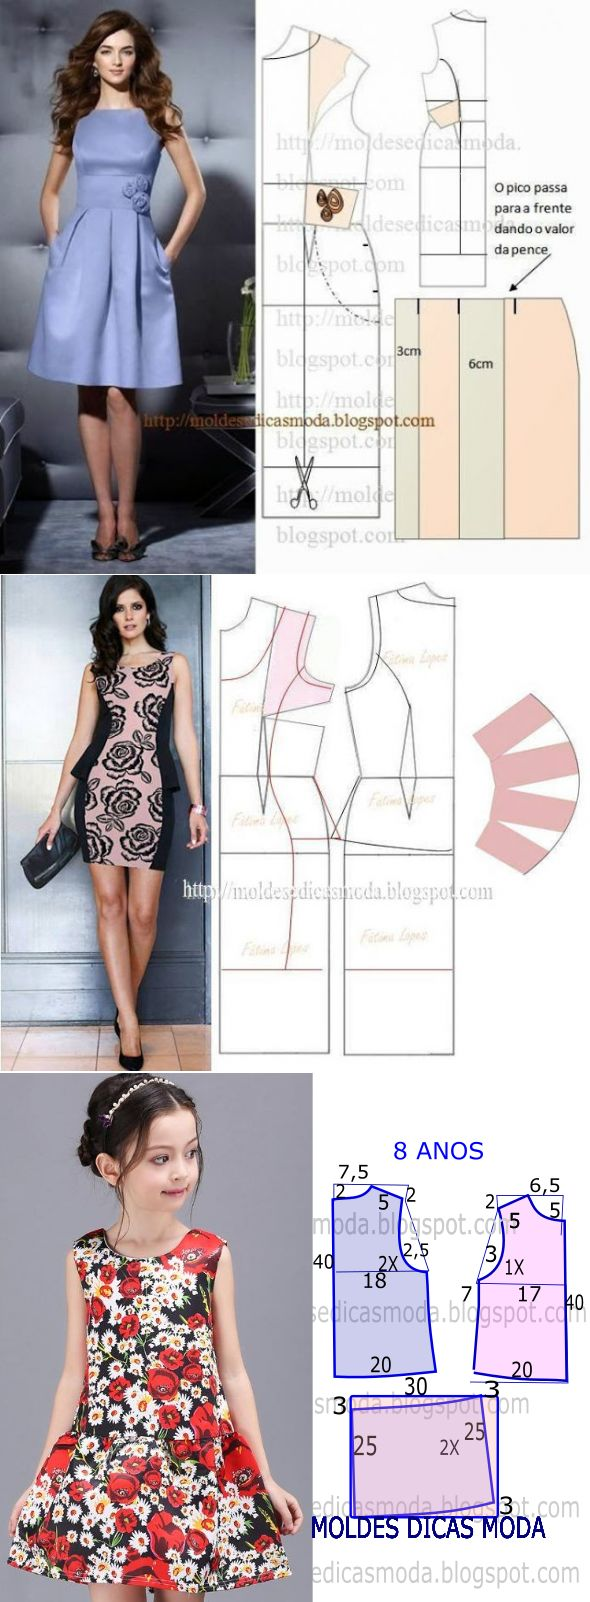 2211 best costura images on Pinterest | Embroidery, Blouses and Clothing